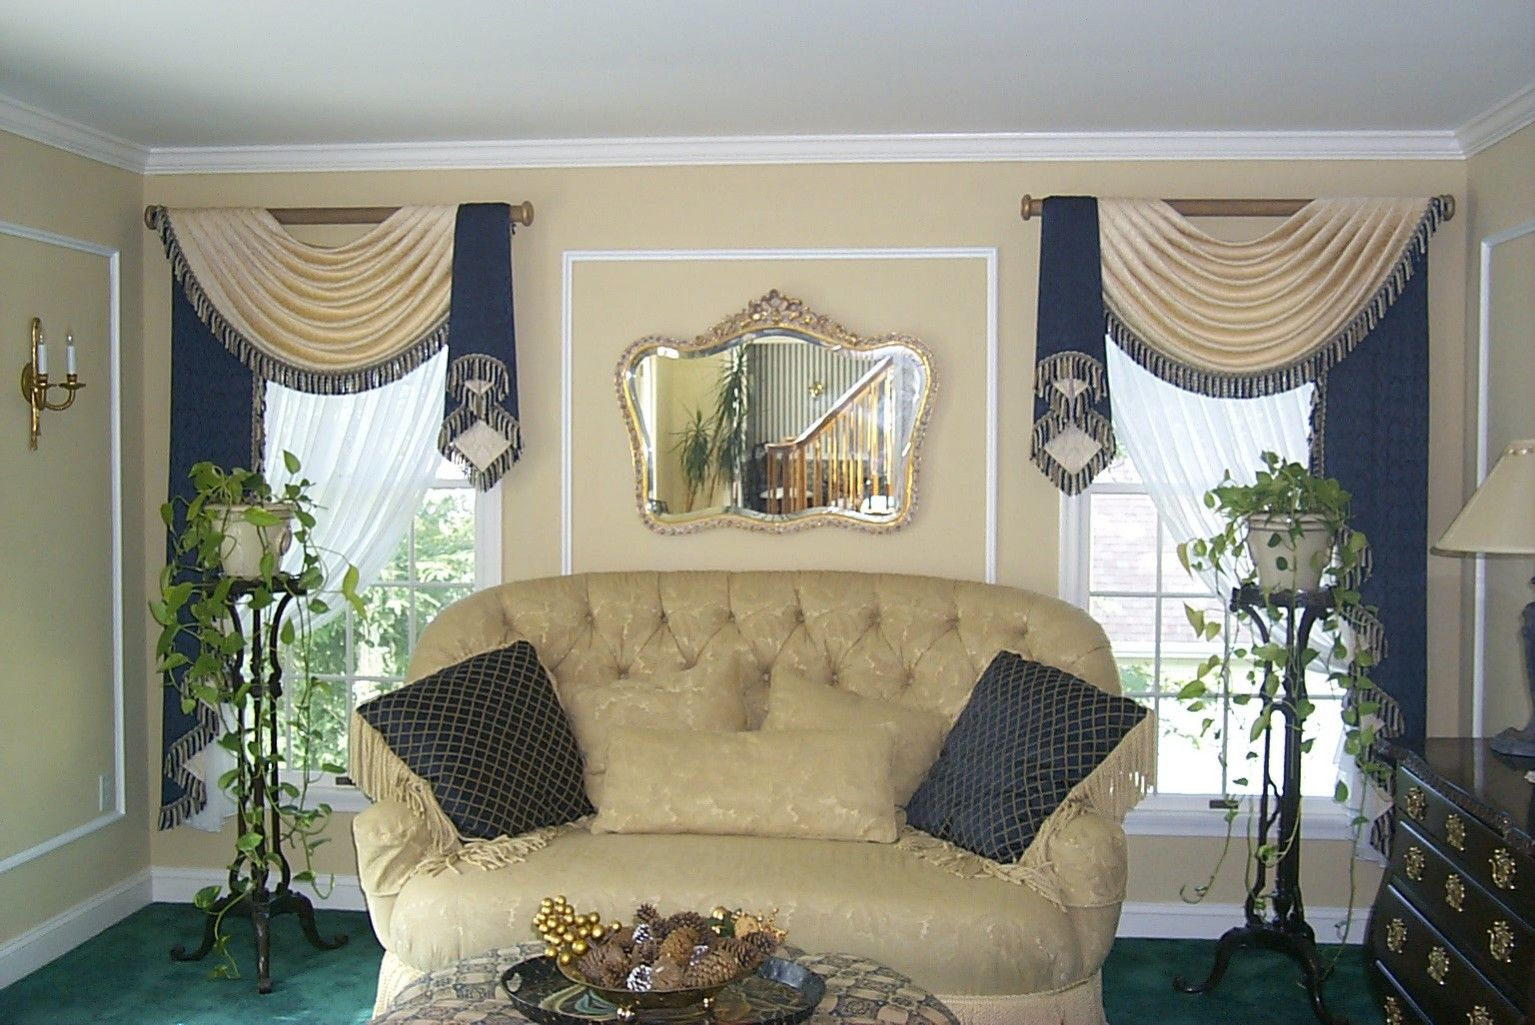 WORKROOM INTELLIGENCE - Before & After - What Window Treatments Can Do For A Room